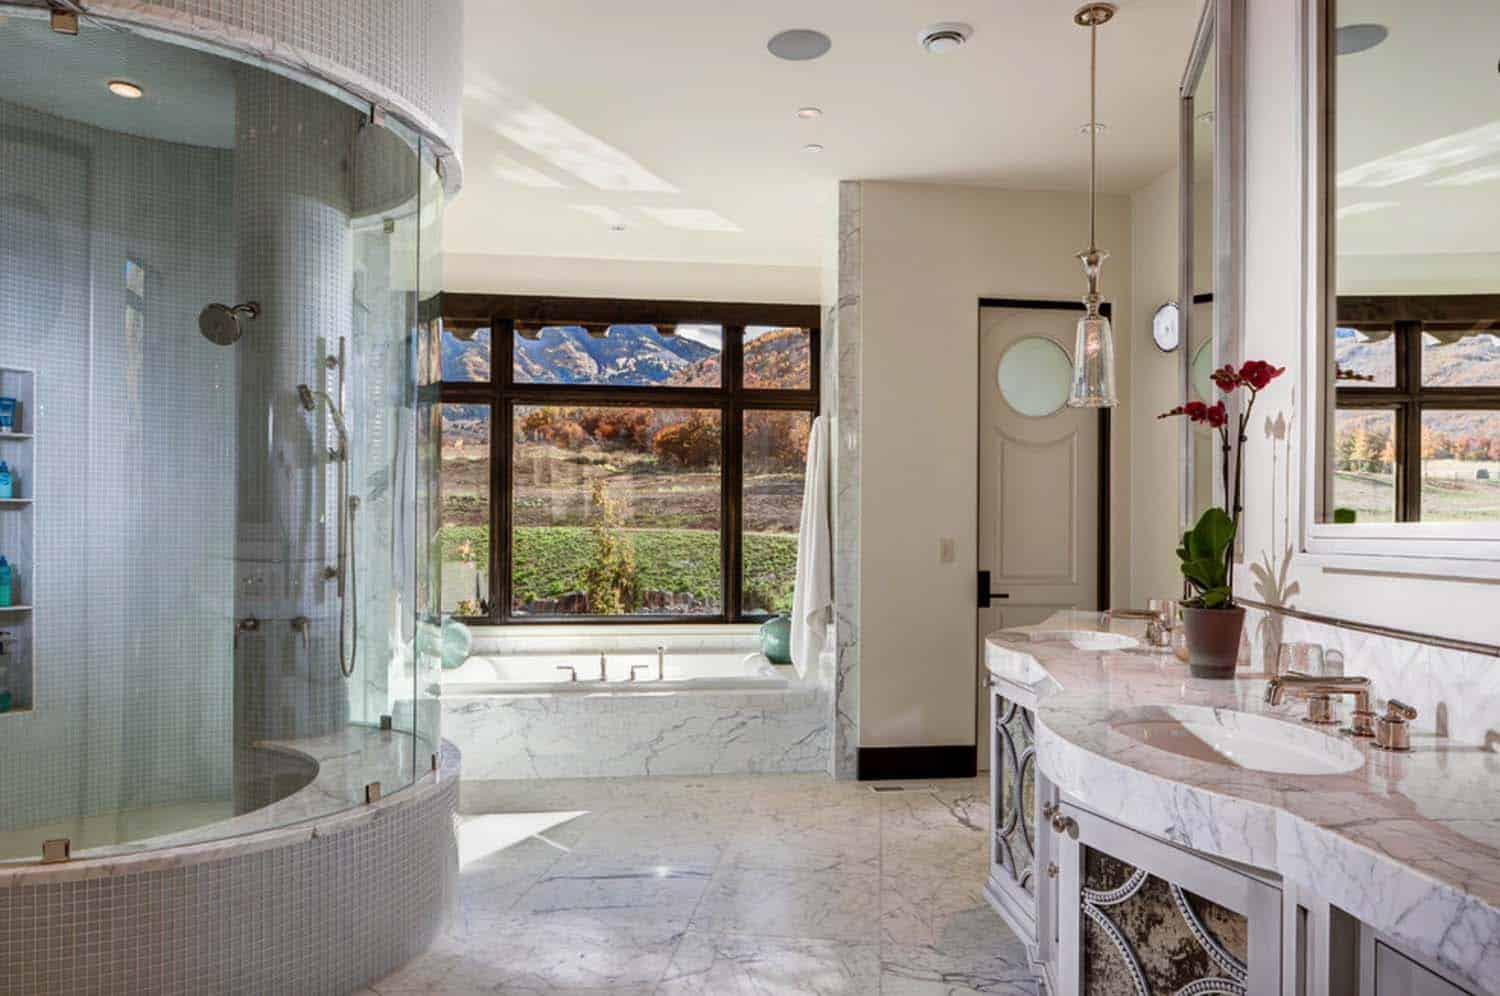 Utah Mountain Residence-Upwall Design-23-1 Kindesign